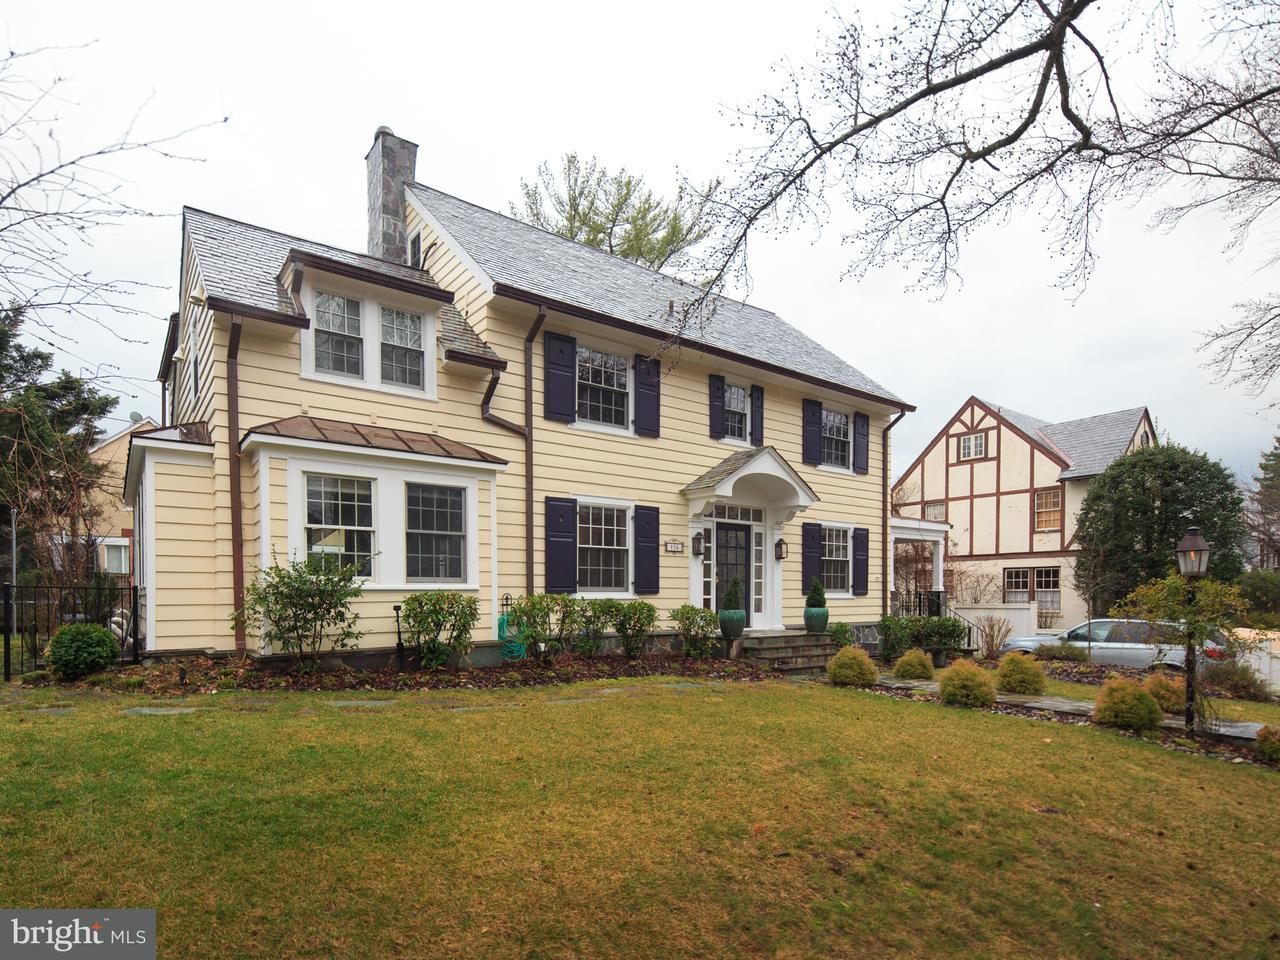 116 hesketh st chevy chase md mls 1000218832 era - Maison ecologique maryland chavy chase ...